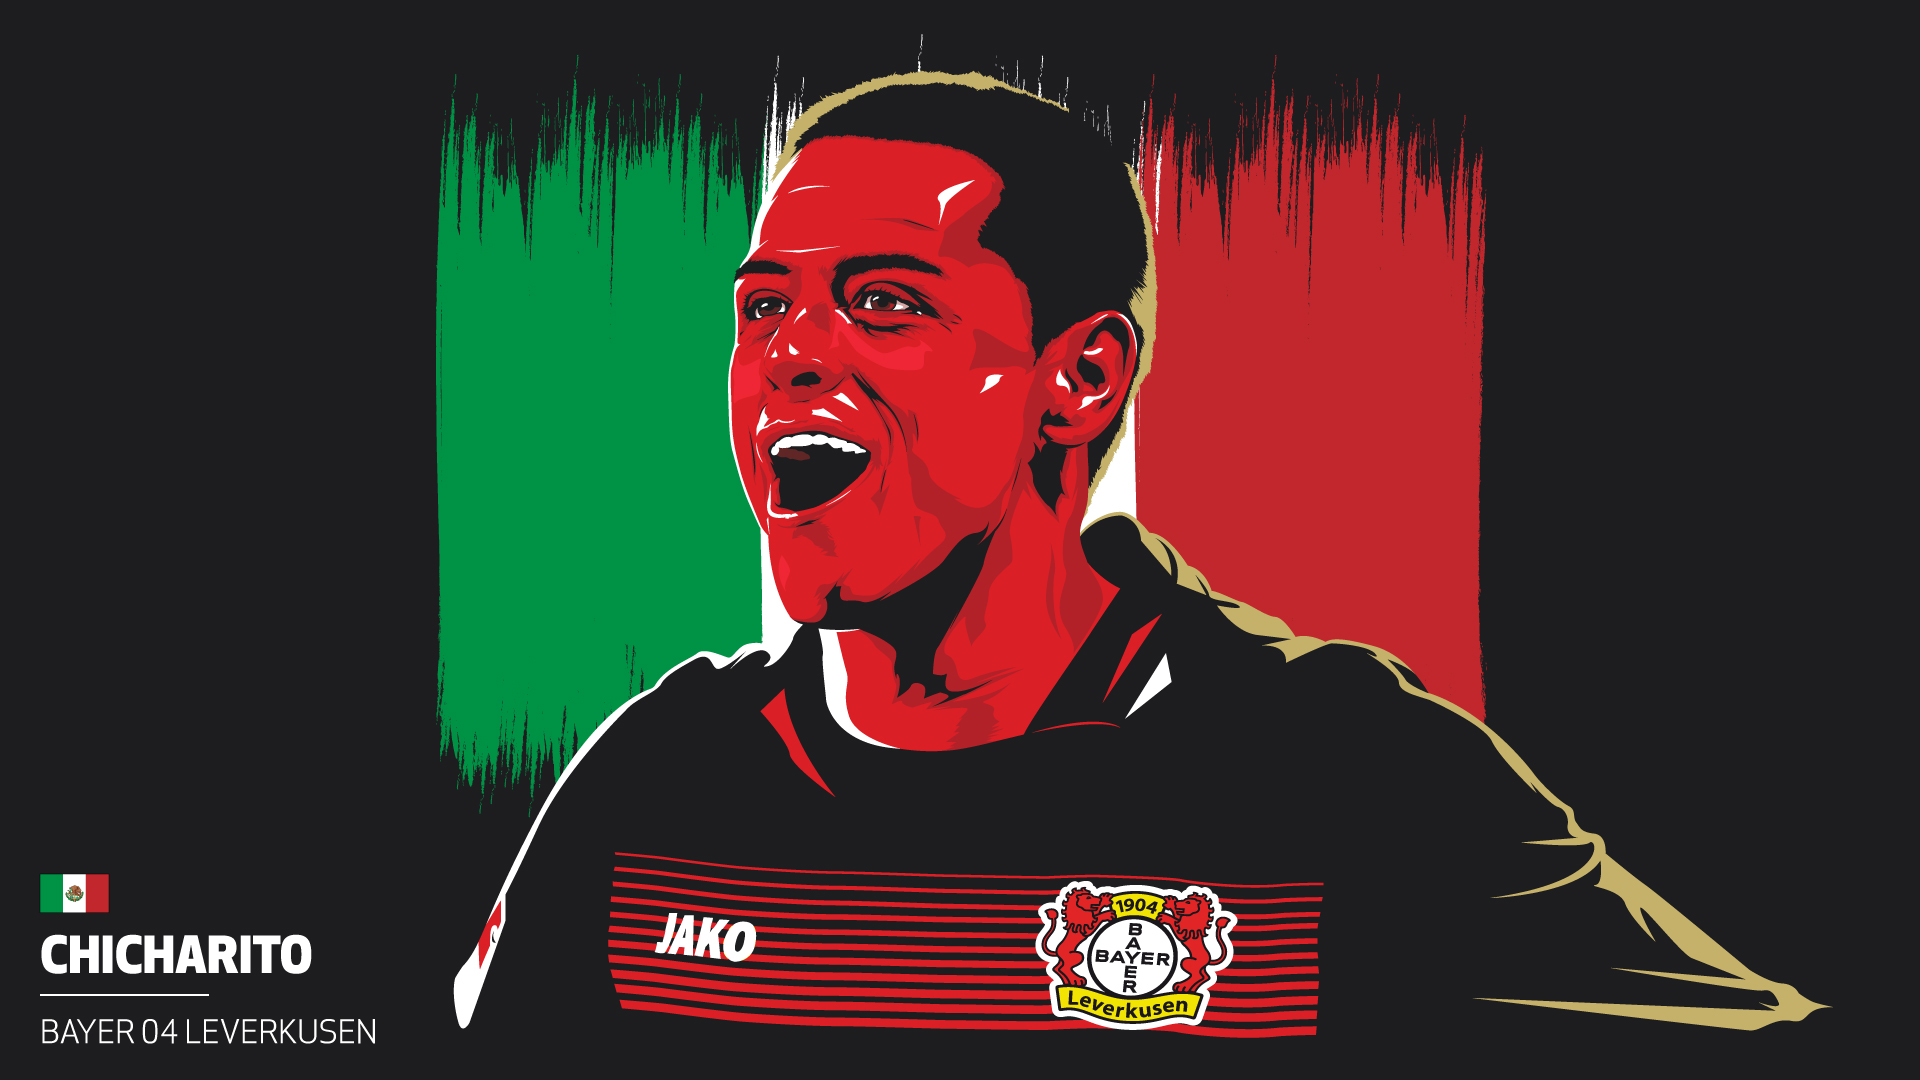 Chicharito-1920x1080